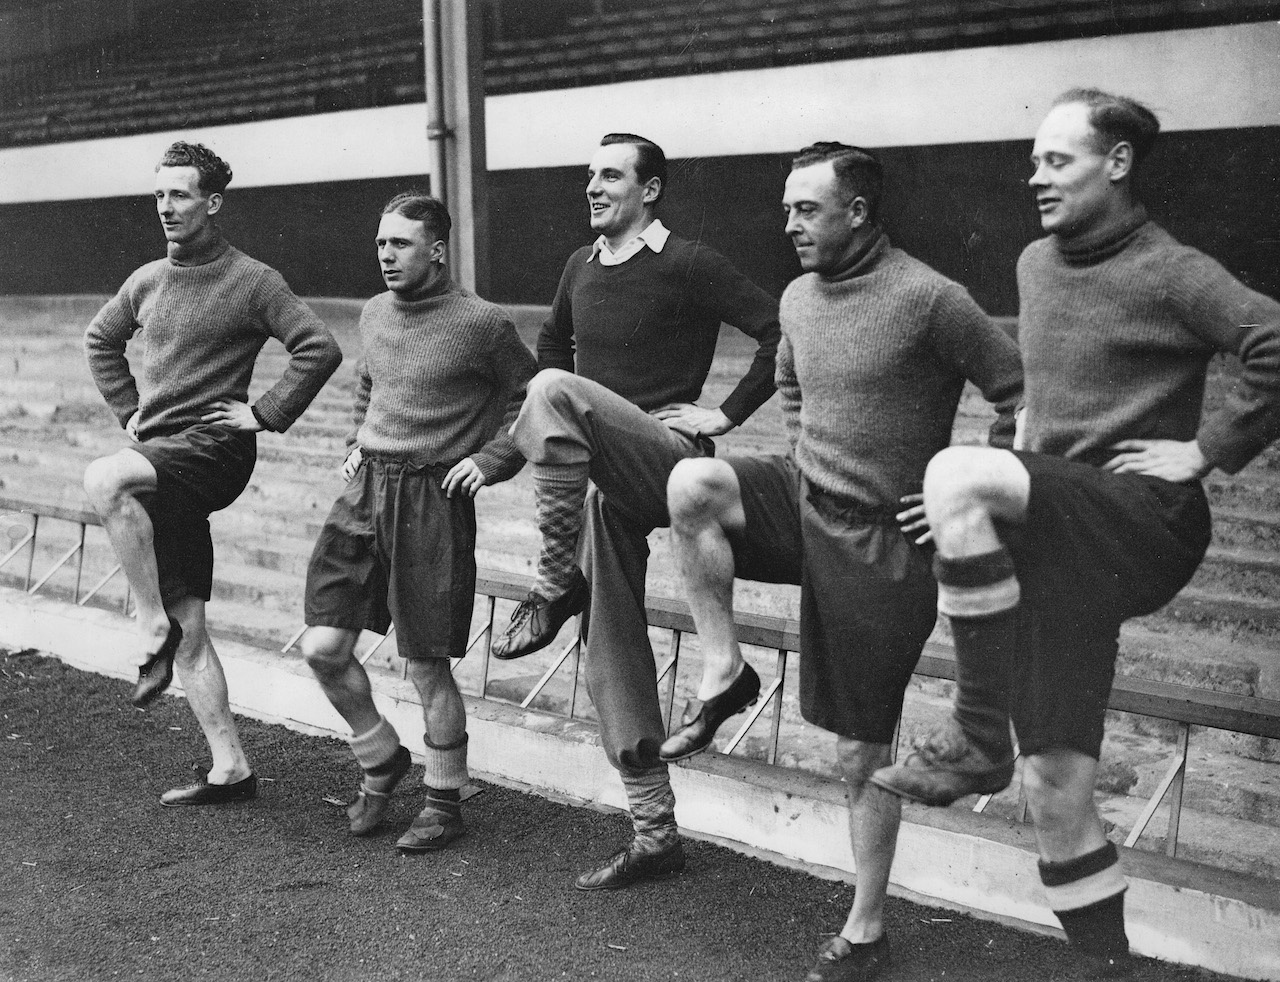 The British tennis player Fred Perry (center) trains with football players Male - Hulme - Roberts and Heasley (Arsenal). Arsenal Stadium. London. 21th February 1936. Photograph. (Photo by Austrian Archives/Imagno/Getty Images)